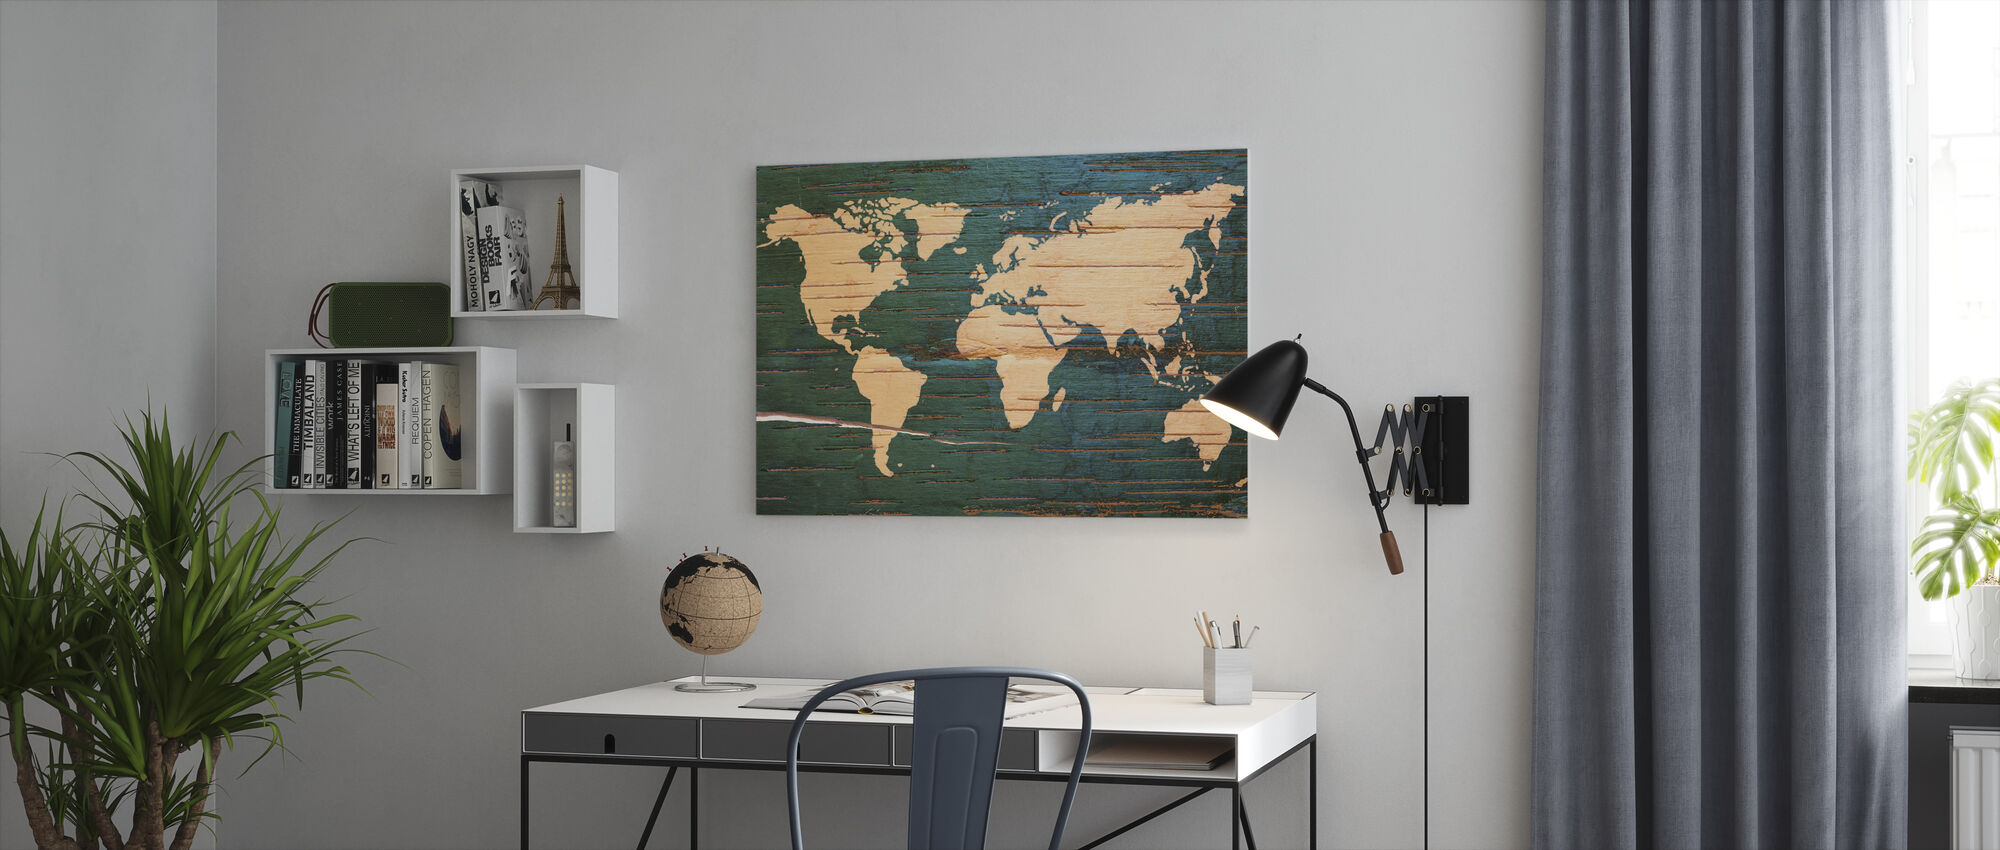 World Map on Wooden Wall - Canvas print - Office